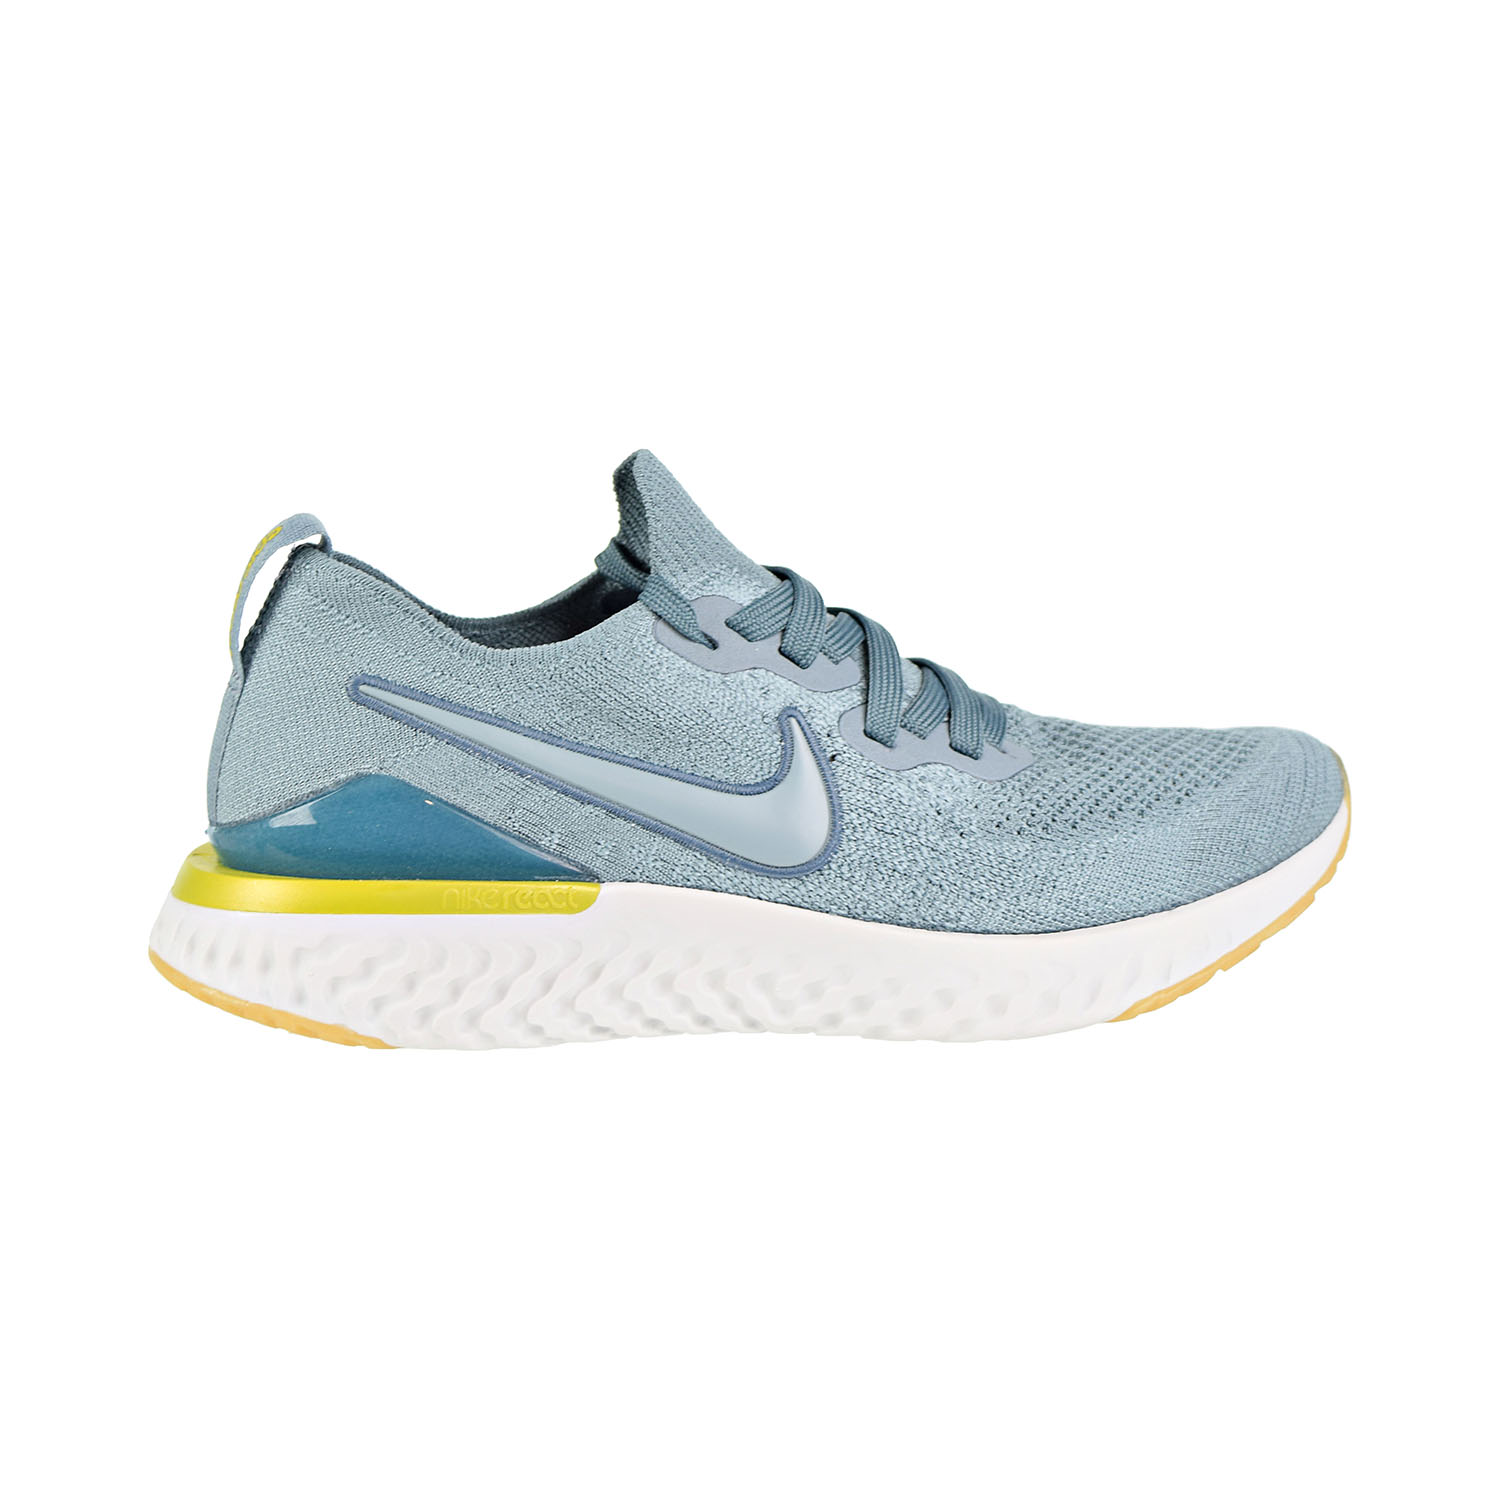 849c157914a0 Details about Nike Epic React Flyknit 2 (GS) Big Kids  Running Shoes  Aviator Grey AQ3243-005